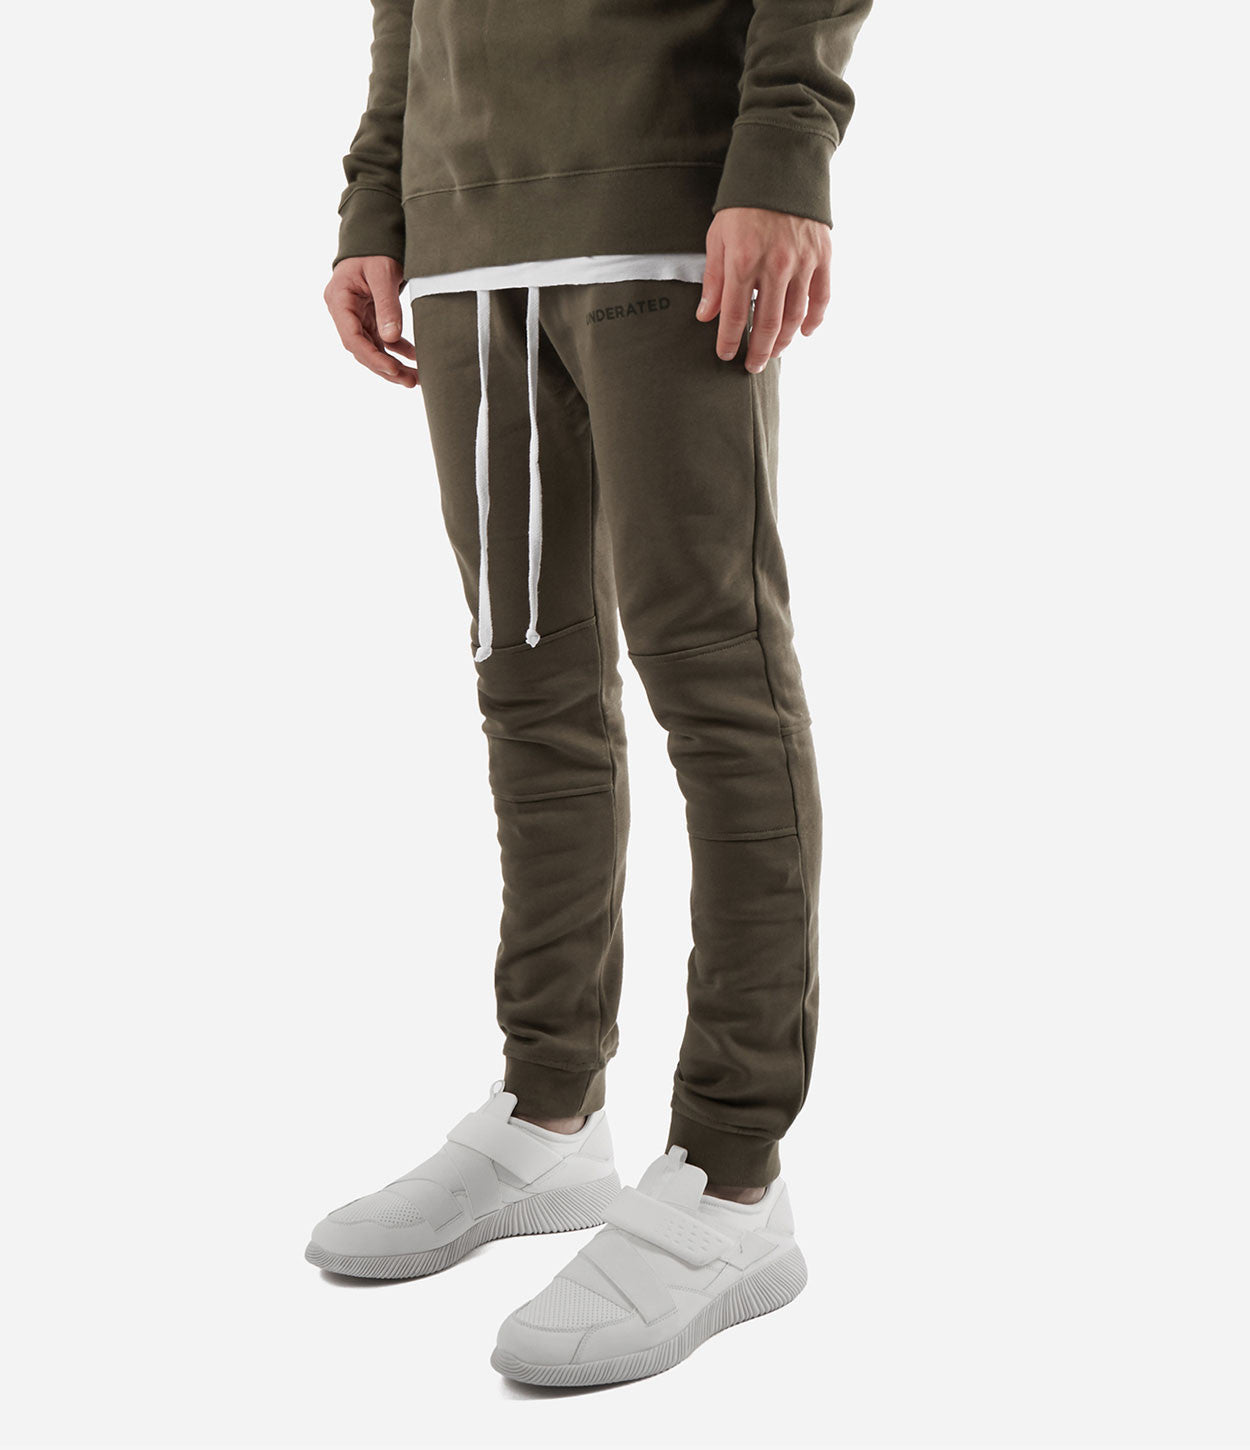 TR355 Essential Joggers - Khaki - underated london - underatedco - 3